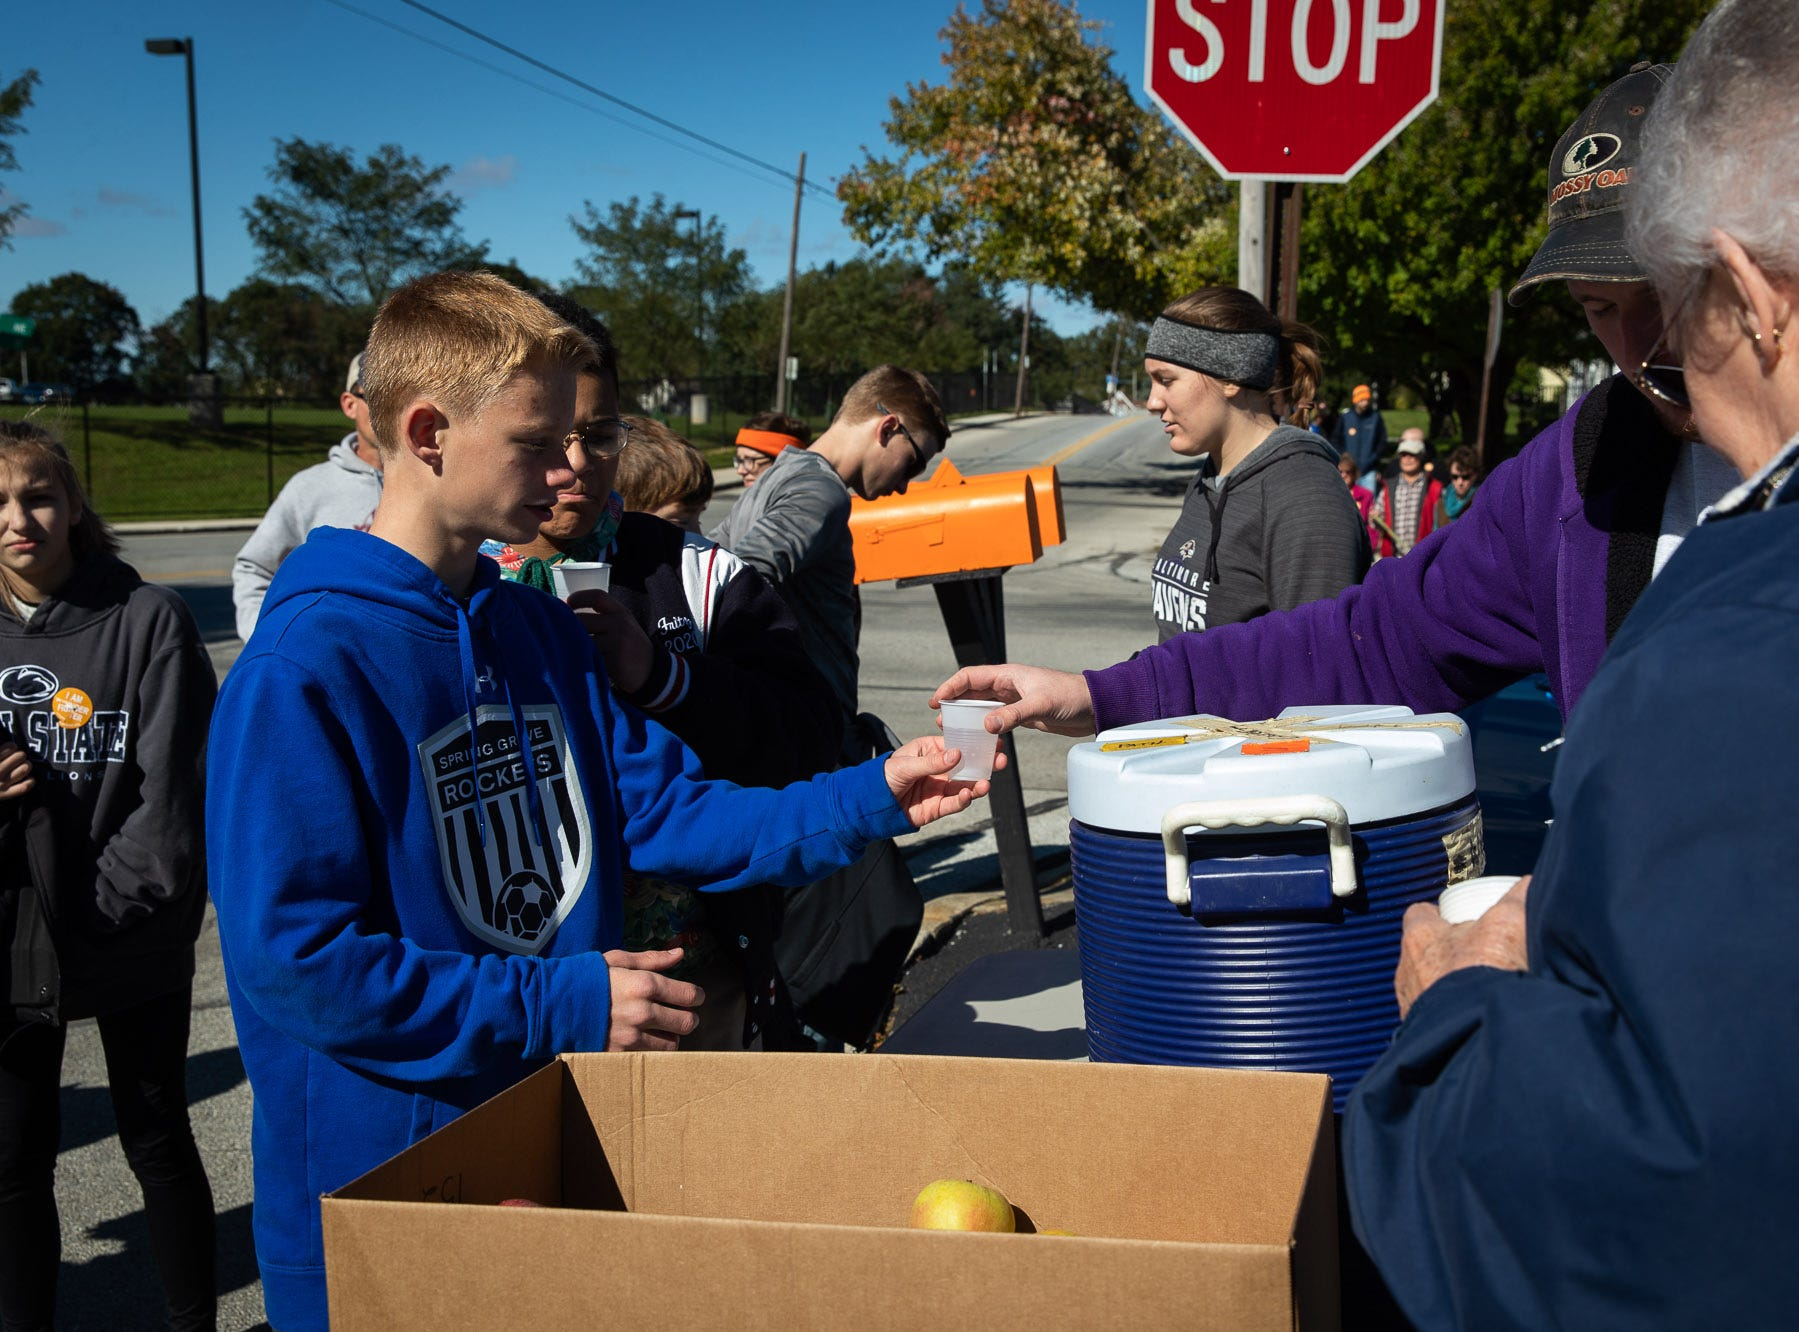 John Chantery hands out water to participants as they take part in the three-mile road course during 42nd annual Hanover Area CROP Walk, Sunday, Oct. 21 in Hanover. The CROP Walk, hosted locally by the Hanover Area Council of Churches, raises money for programs to end hunger in the Hanover area, as well as worldwide through the Church World Service.